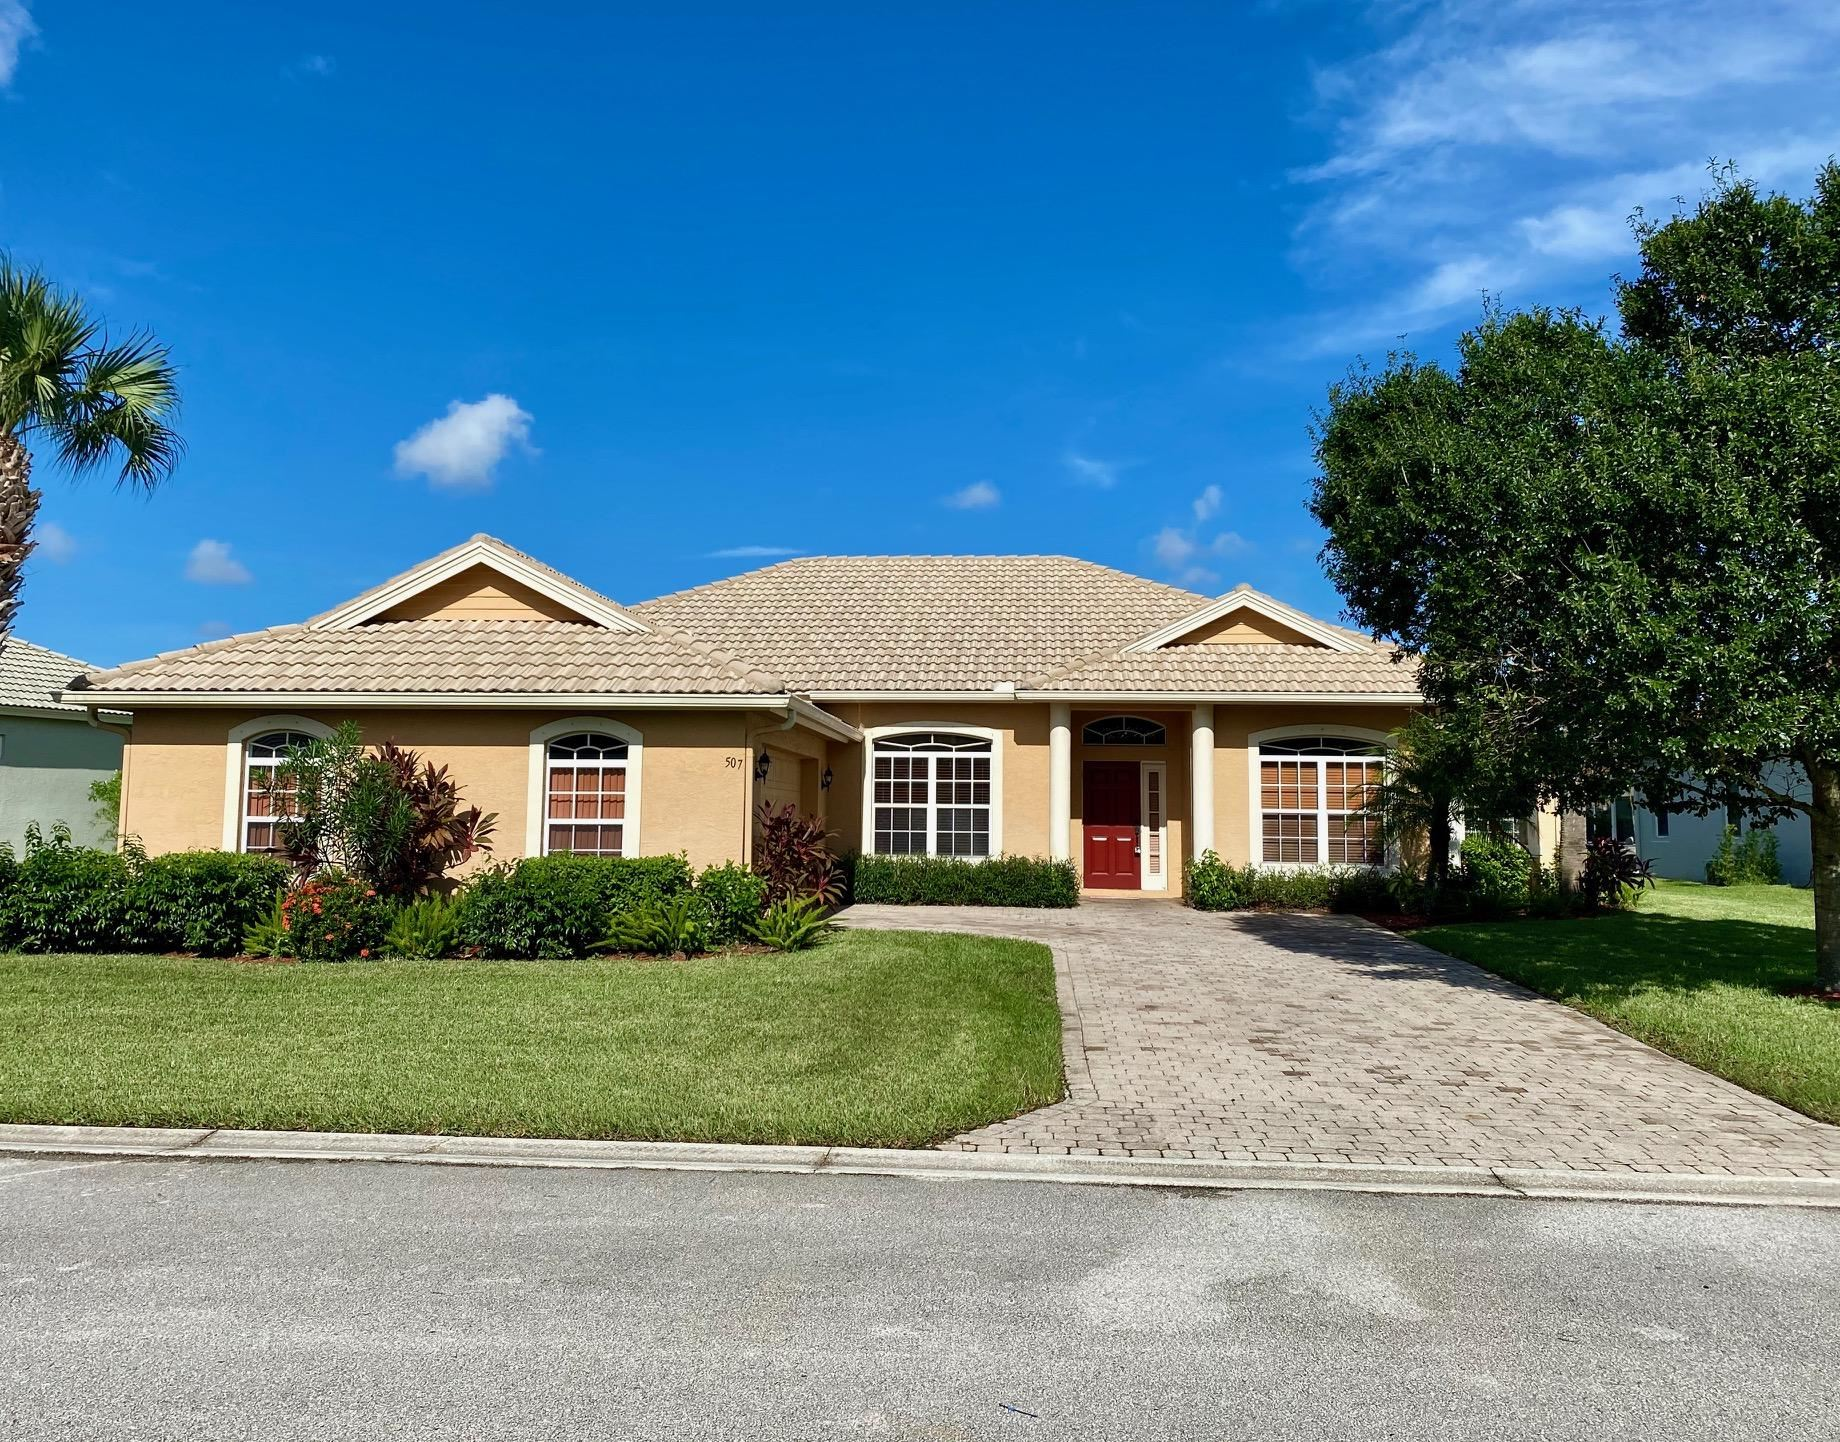 507 NW Ashton Way, Port Saint Lucie, FL 34983 - #: RX-10642371